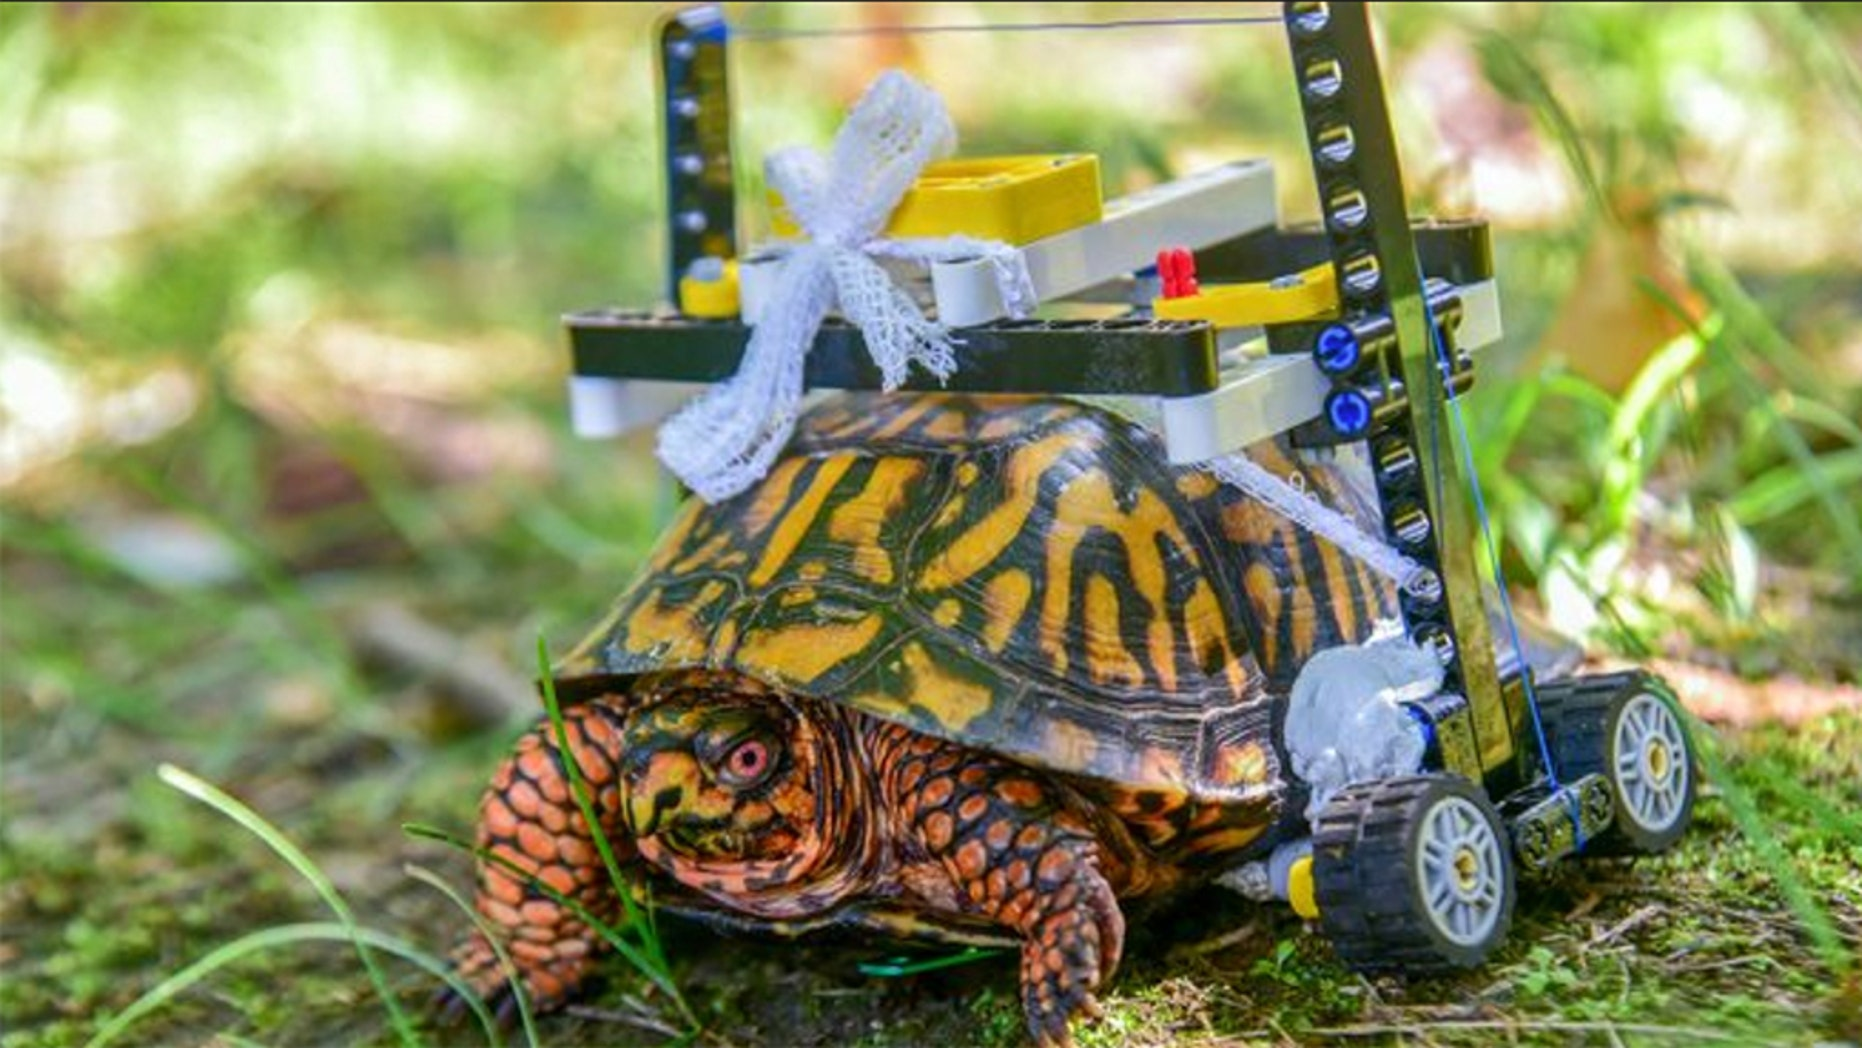 "A ""customized Lego wheelchair"" was designed for one lucky wild Eastern box turtle who needed some help after injuring and undergoing surgery for his shell, according to a news release from the Maryland Zoo."